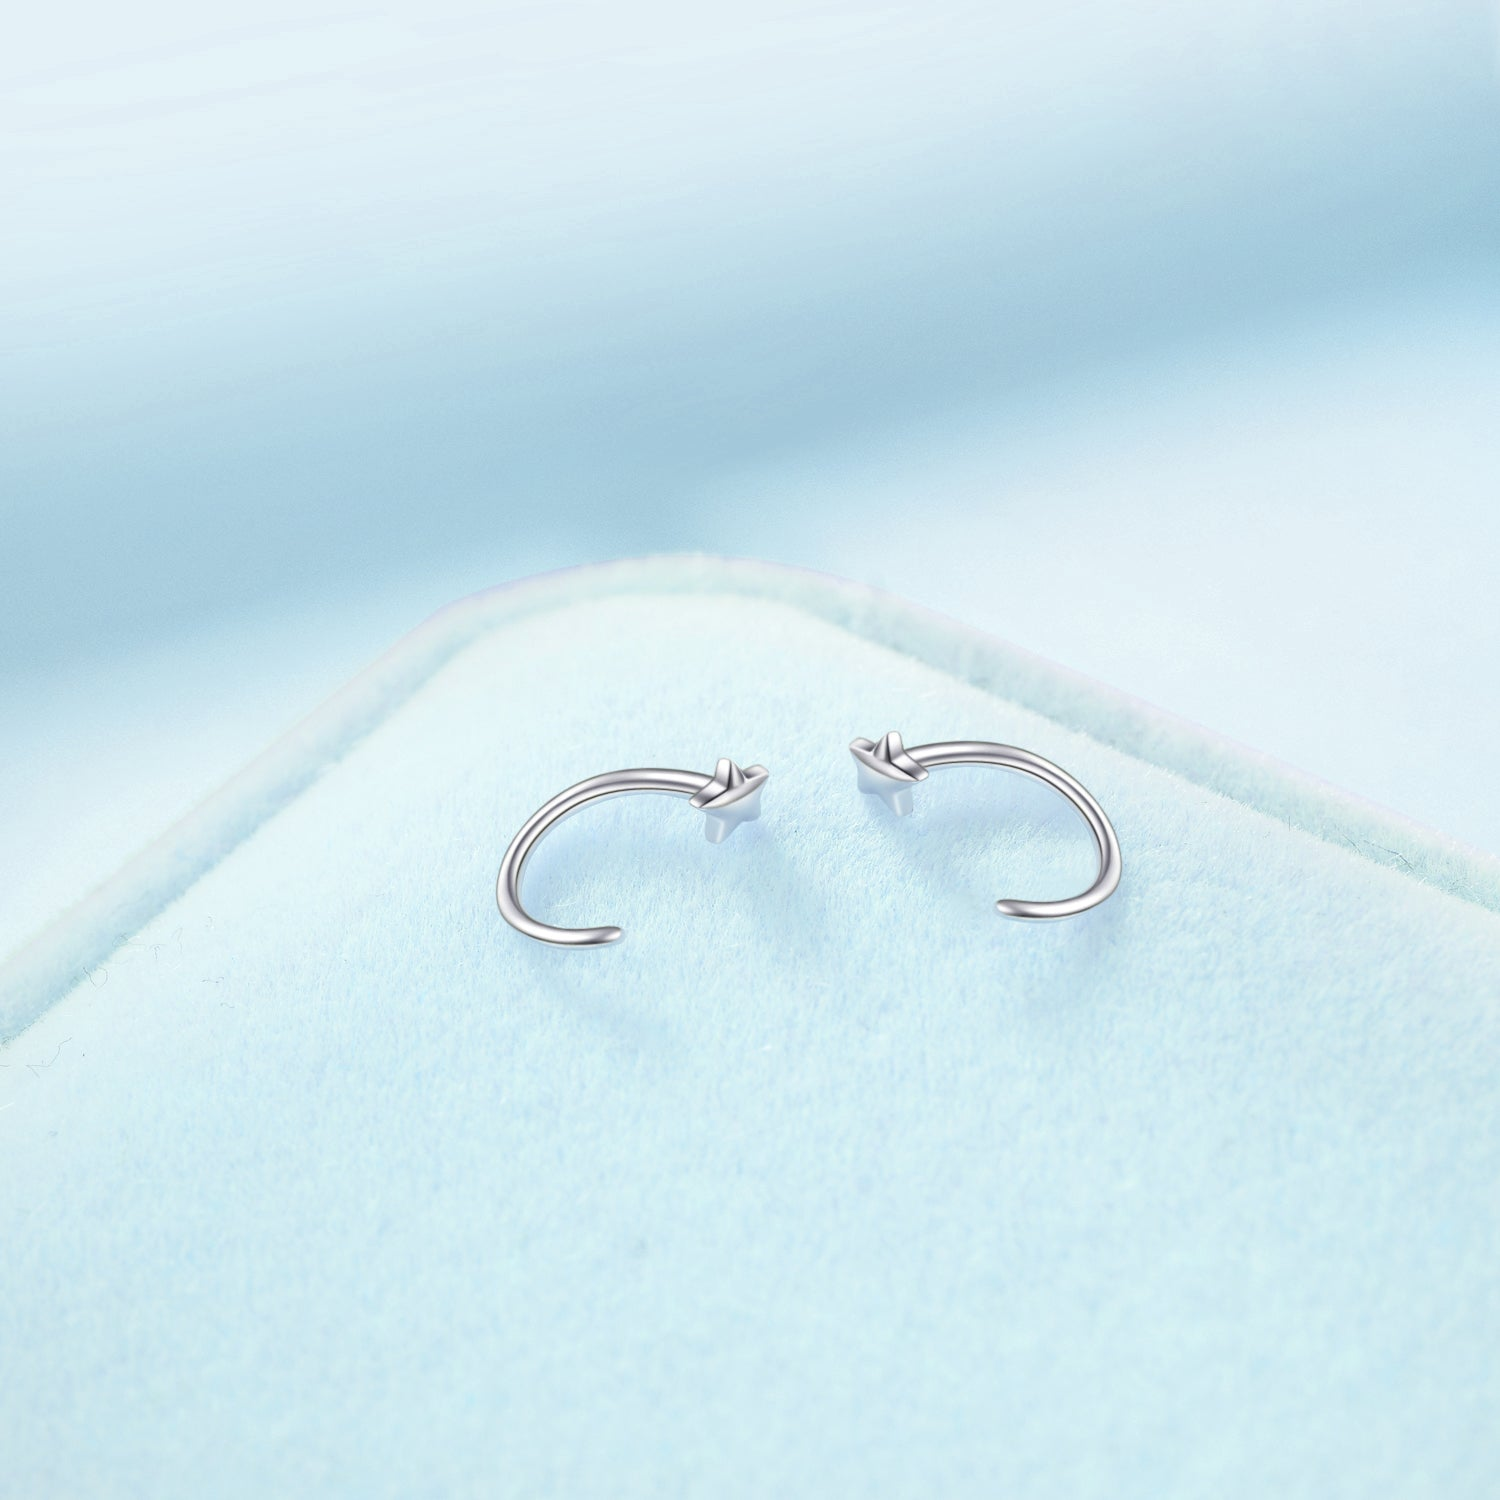 Stars in the Sky Design Nose Ring for Beautiful Female Design Nose Ring